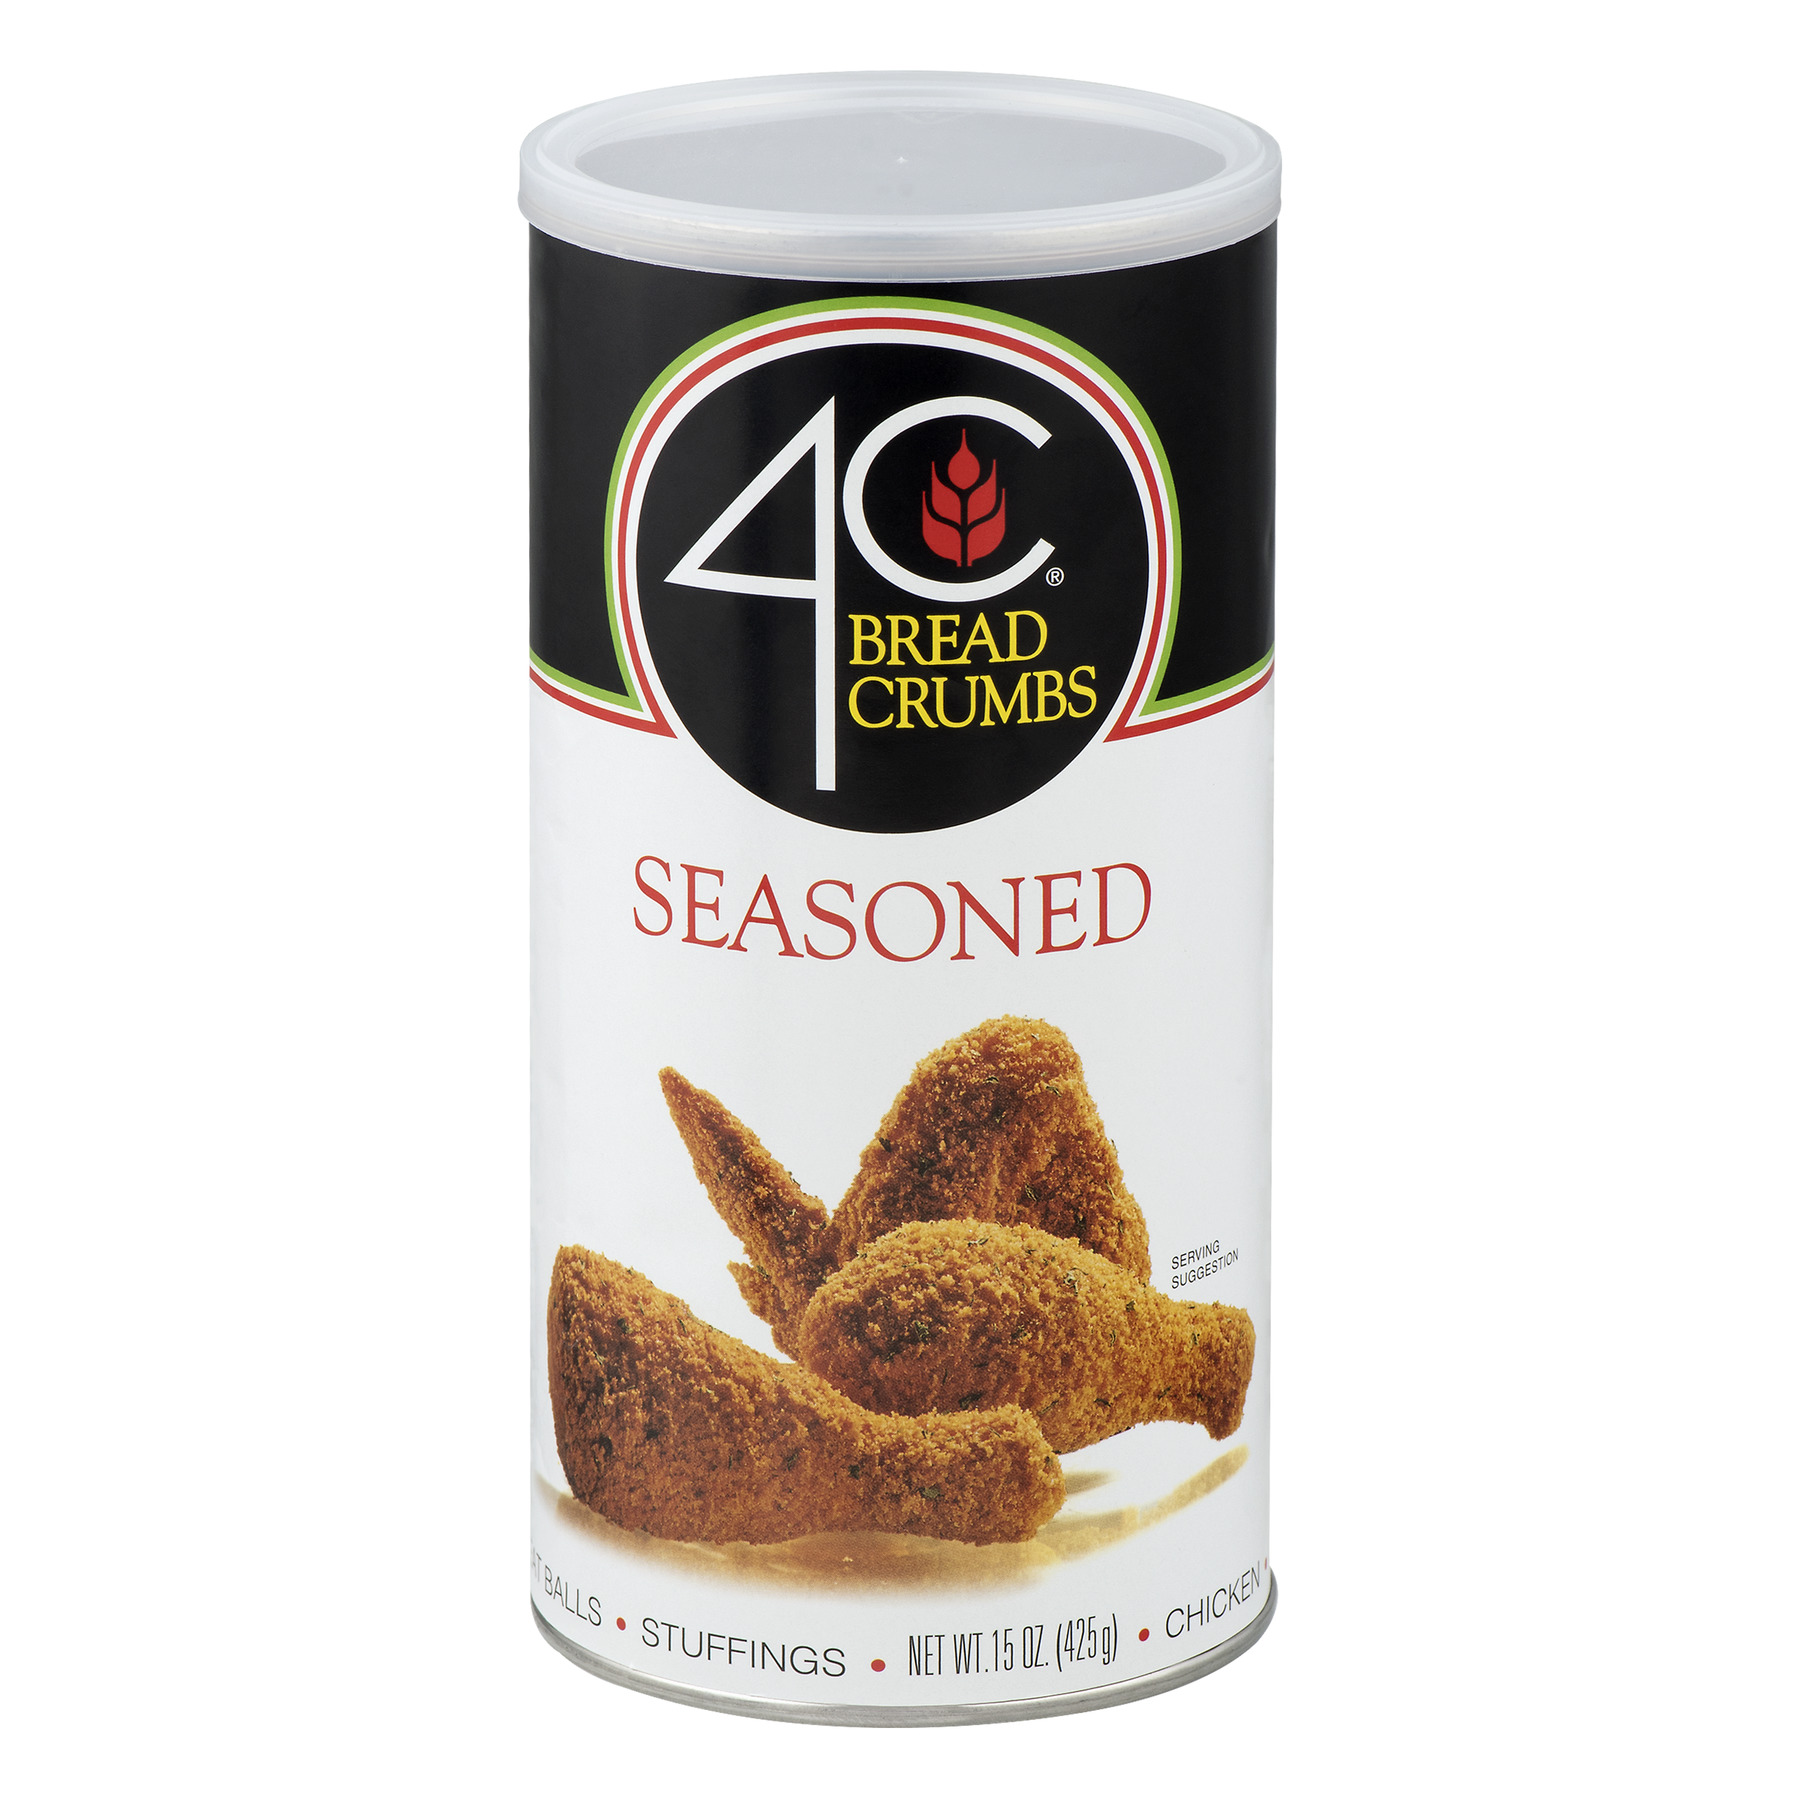 Image of 4C Breadcrumbs Seasoned, 15.0 OZ